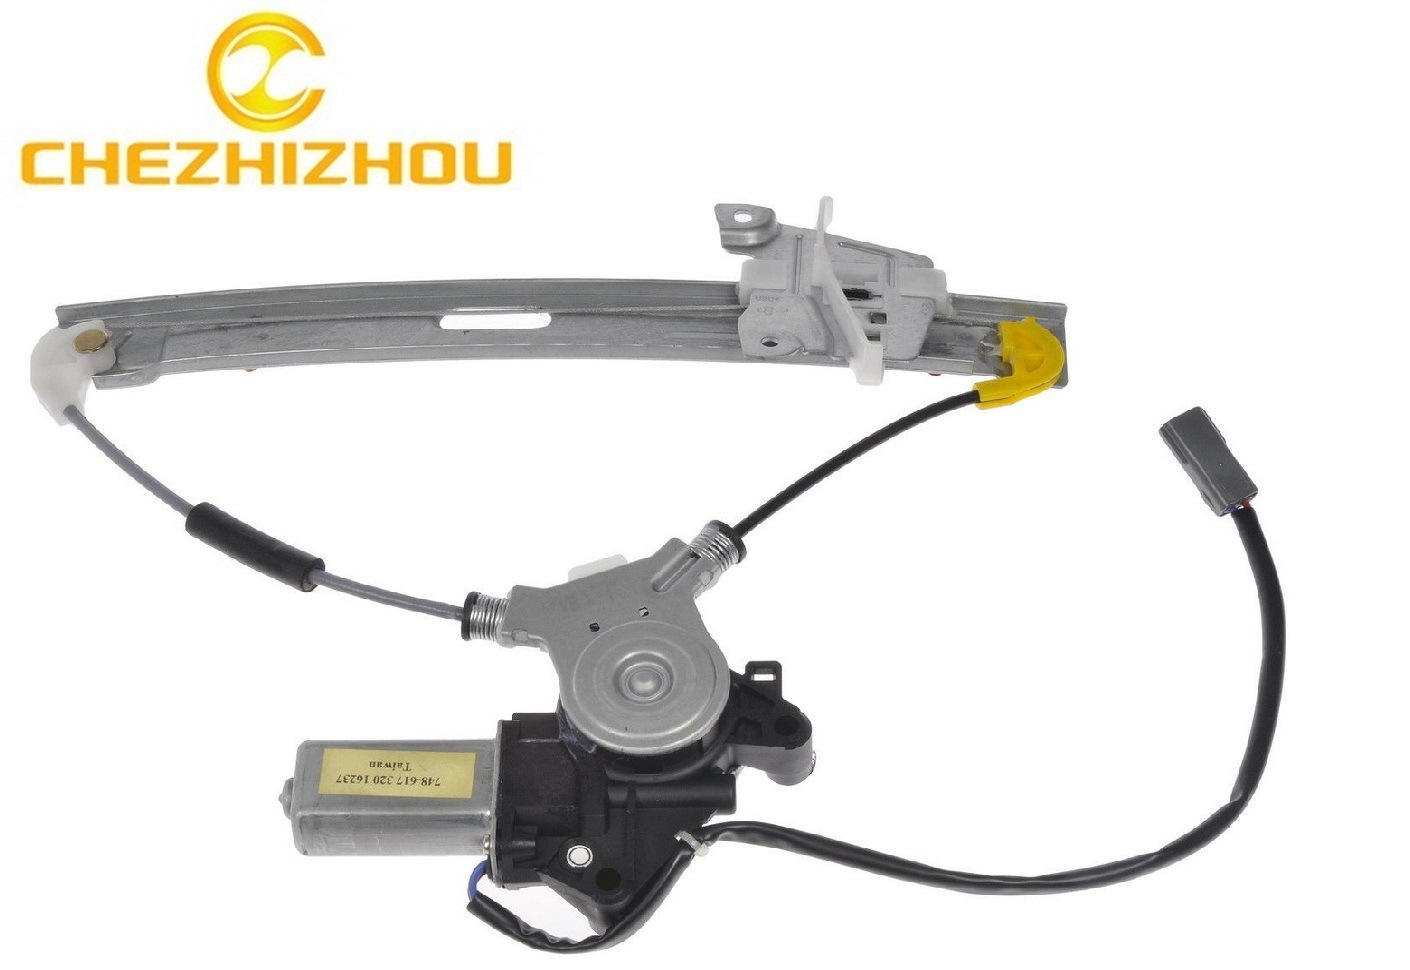 China Rl Auto Spare Parts Electric Power Window Regulator Lift Motor Assembly For Ford Escape 2001 07 Mercury Mariner 2005 07 China Auto Spare Parts Auto Car Part